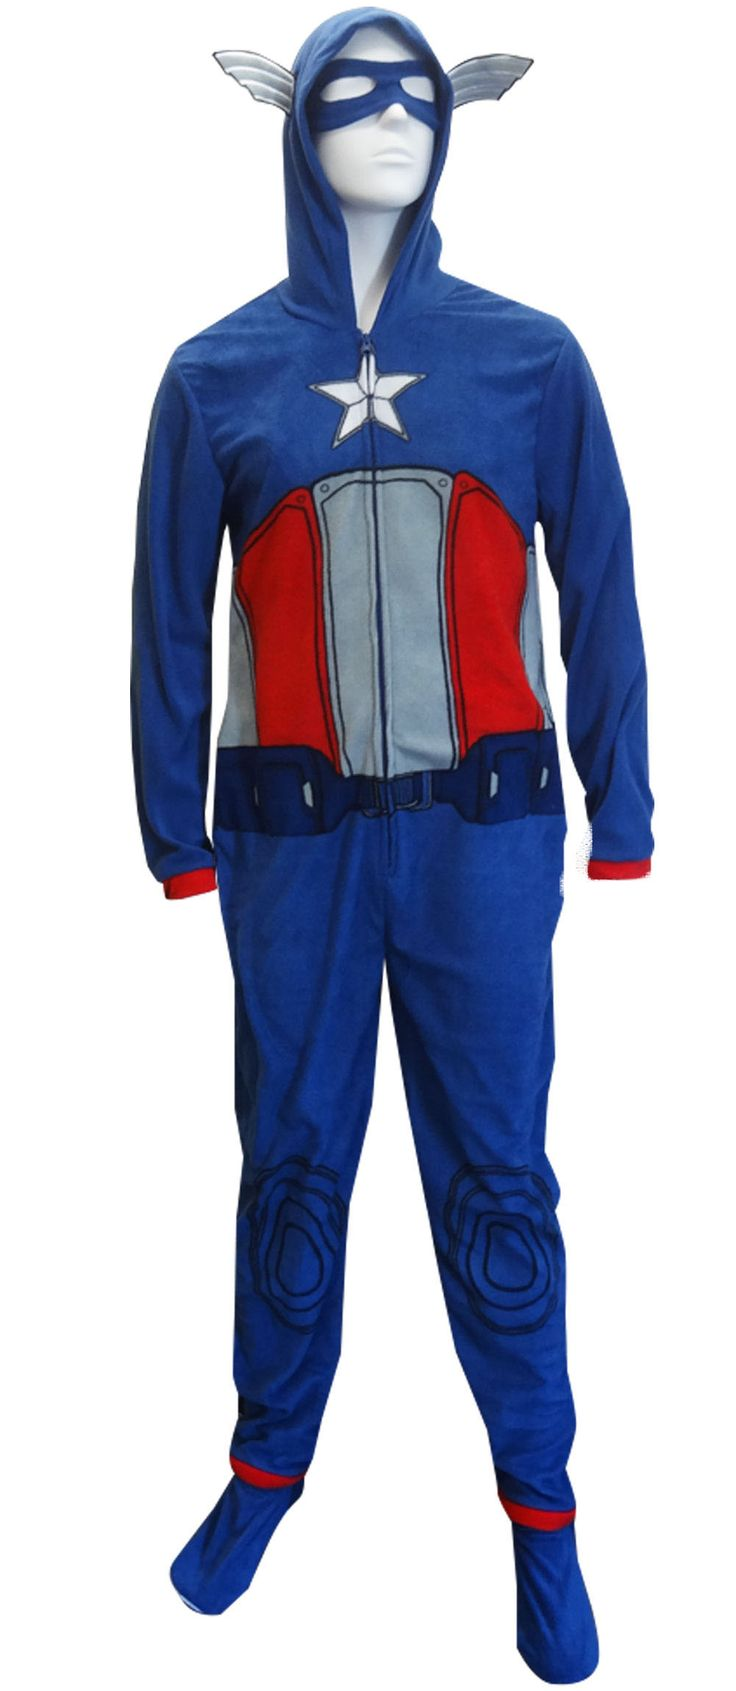 Marvel Comics Captain America Hooded Masked Onesie Pajama Who says adults have to have boring pajamas? Conquer the evil-doers i...